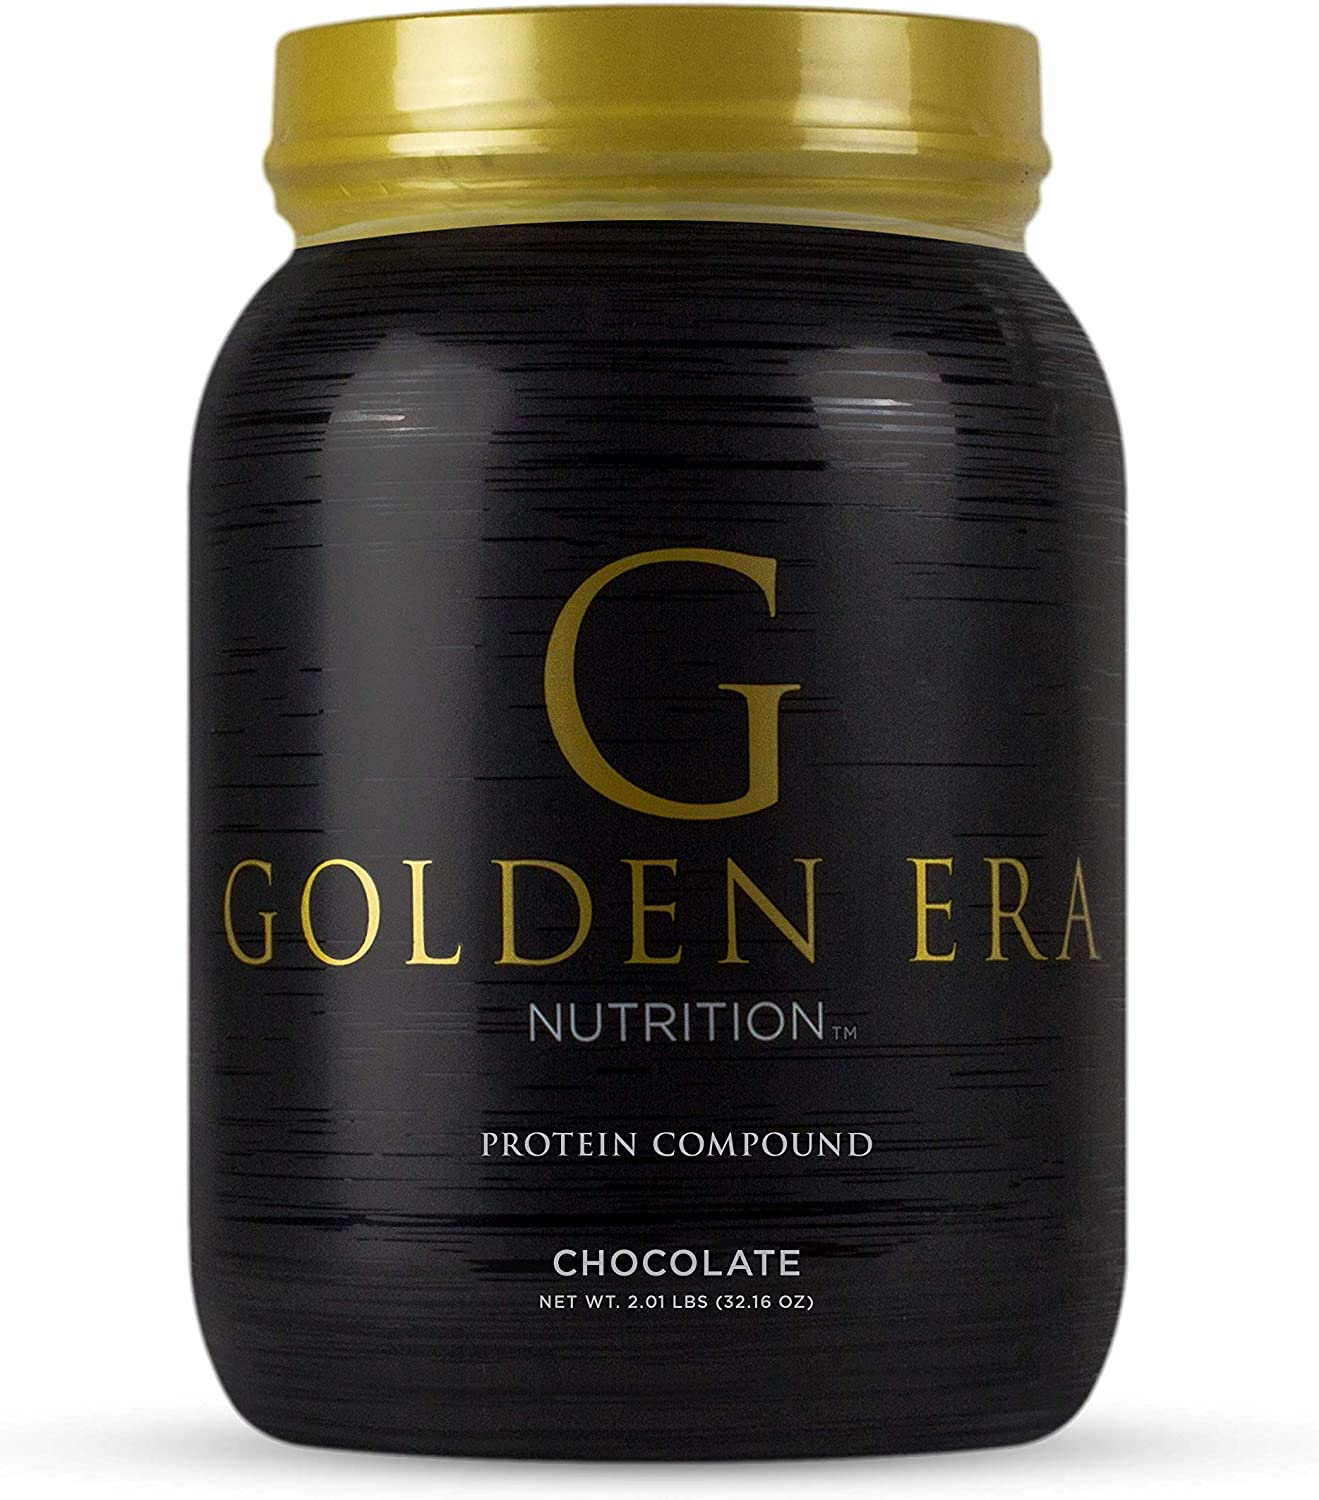 Golden Era Nutrition Whey Protein Compound Powder, Cookies and Cream Flavor, Gluten-Free, 2 Pounds